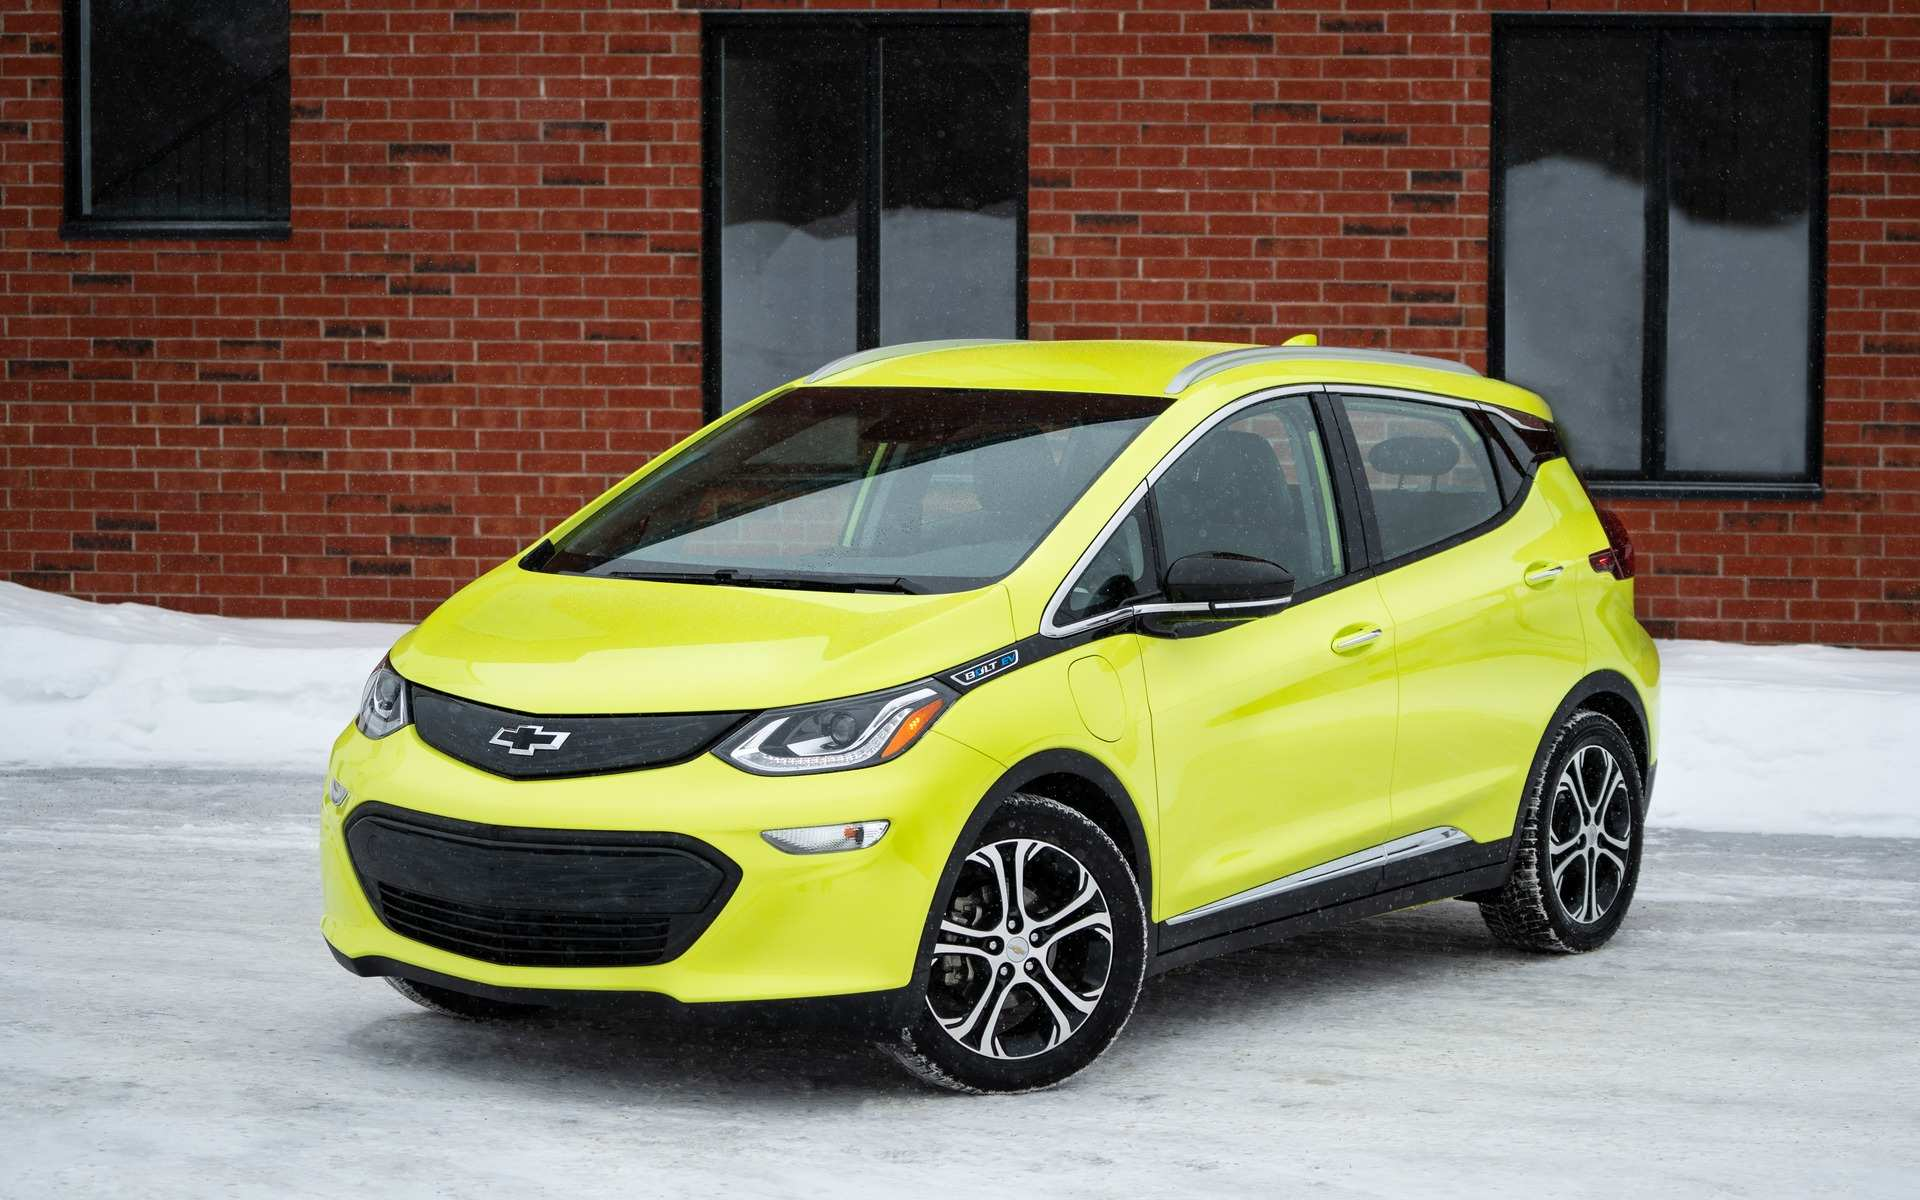 92 Great 2020 Chevrolet Bolt Ev Interior with 2020 Chevrolet Bolt Ev